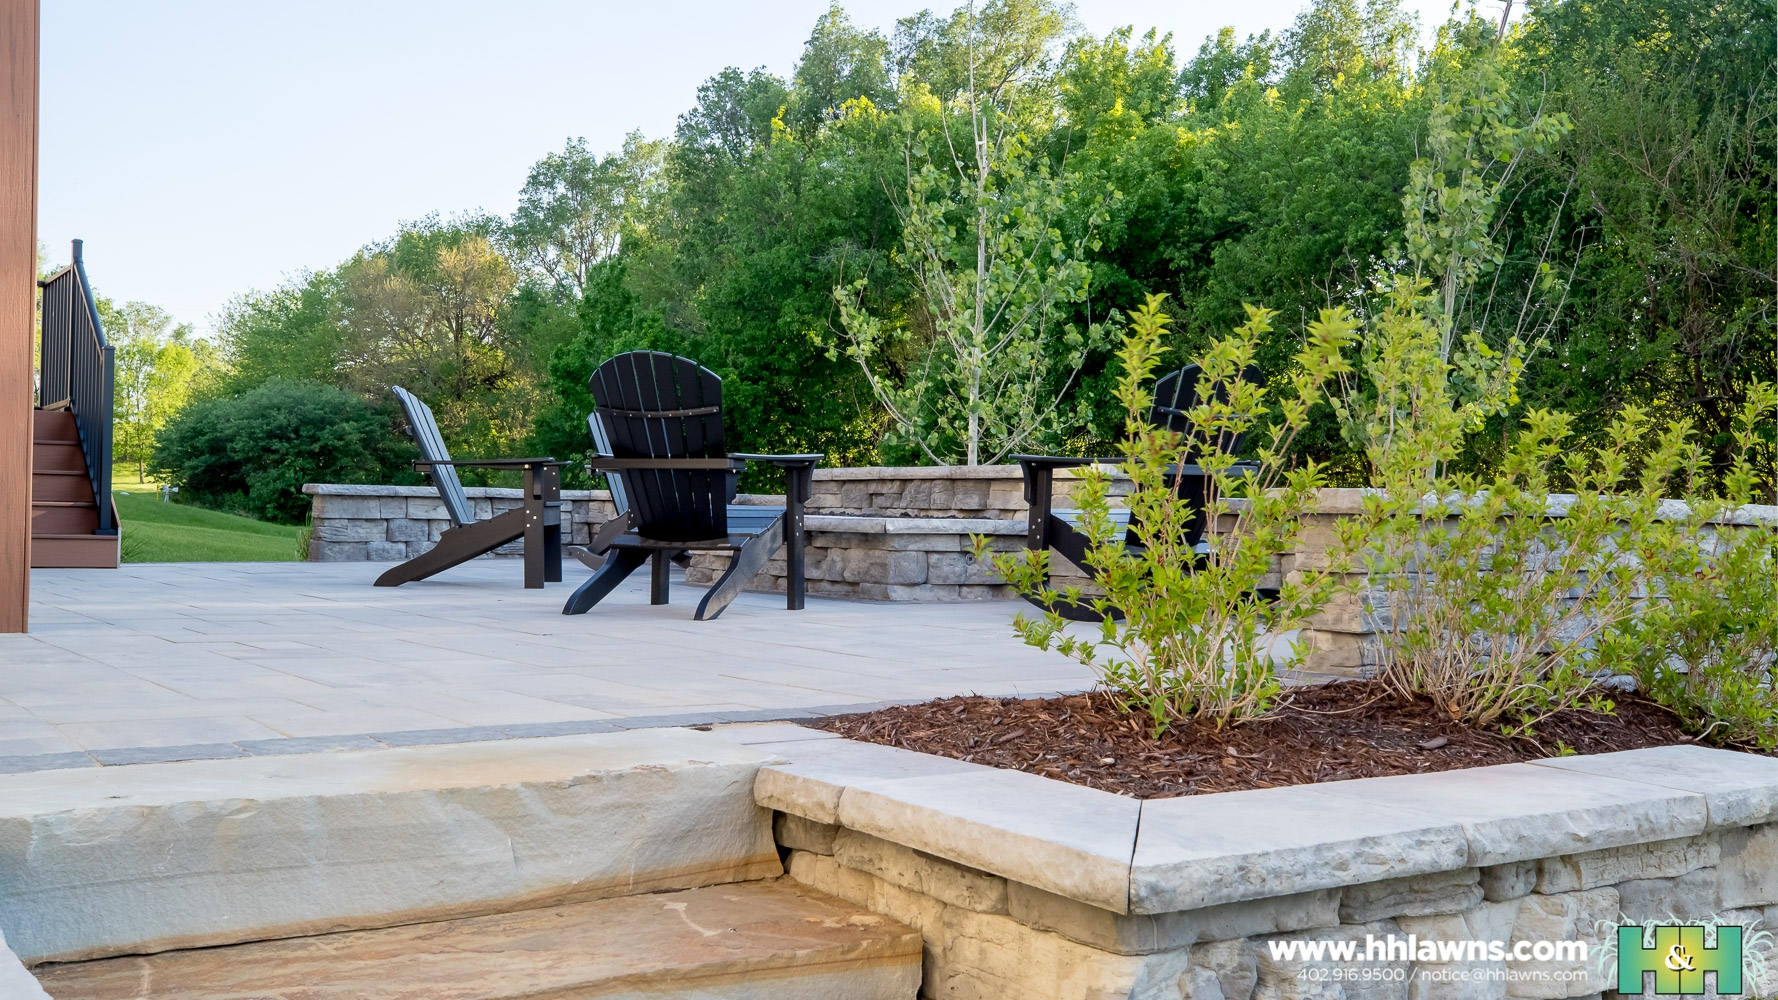 051718 Dawn Stock Residential Landscape Design H&H Lawn and Landscape Omaha, Nebraska Photos by Nate Olsen